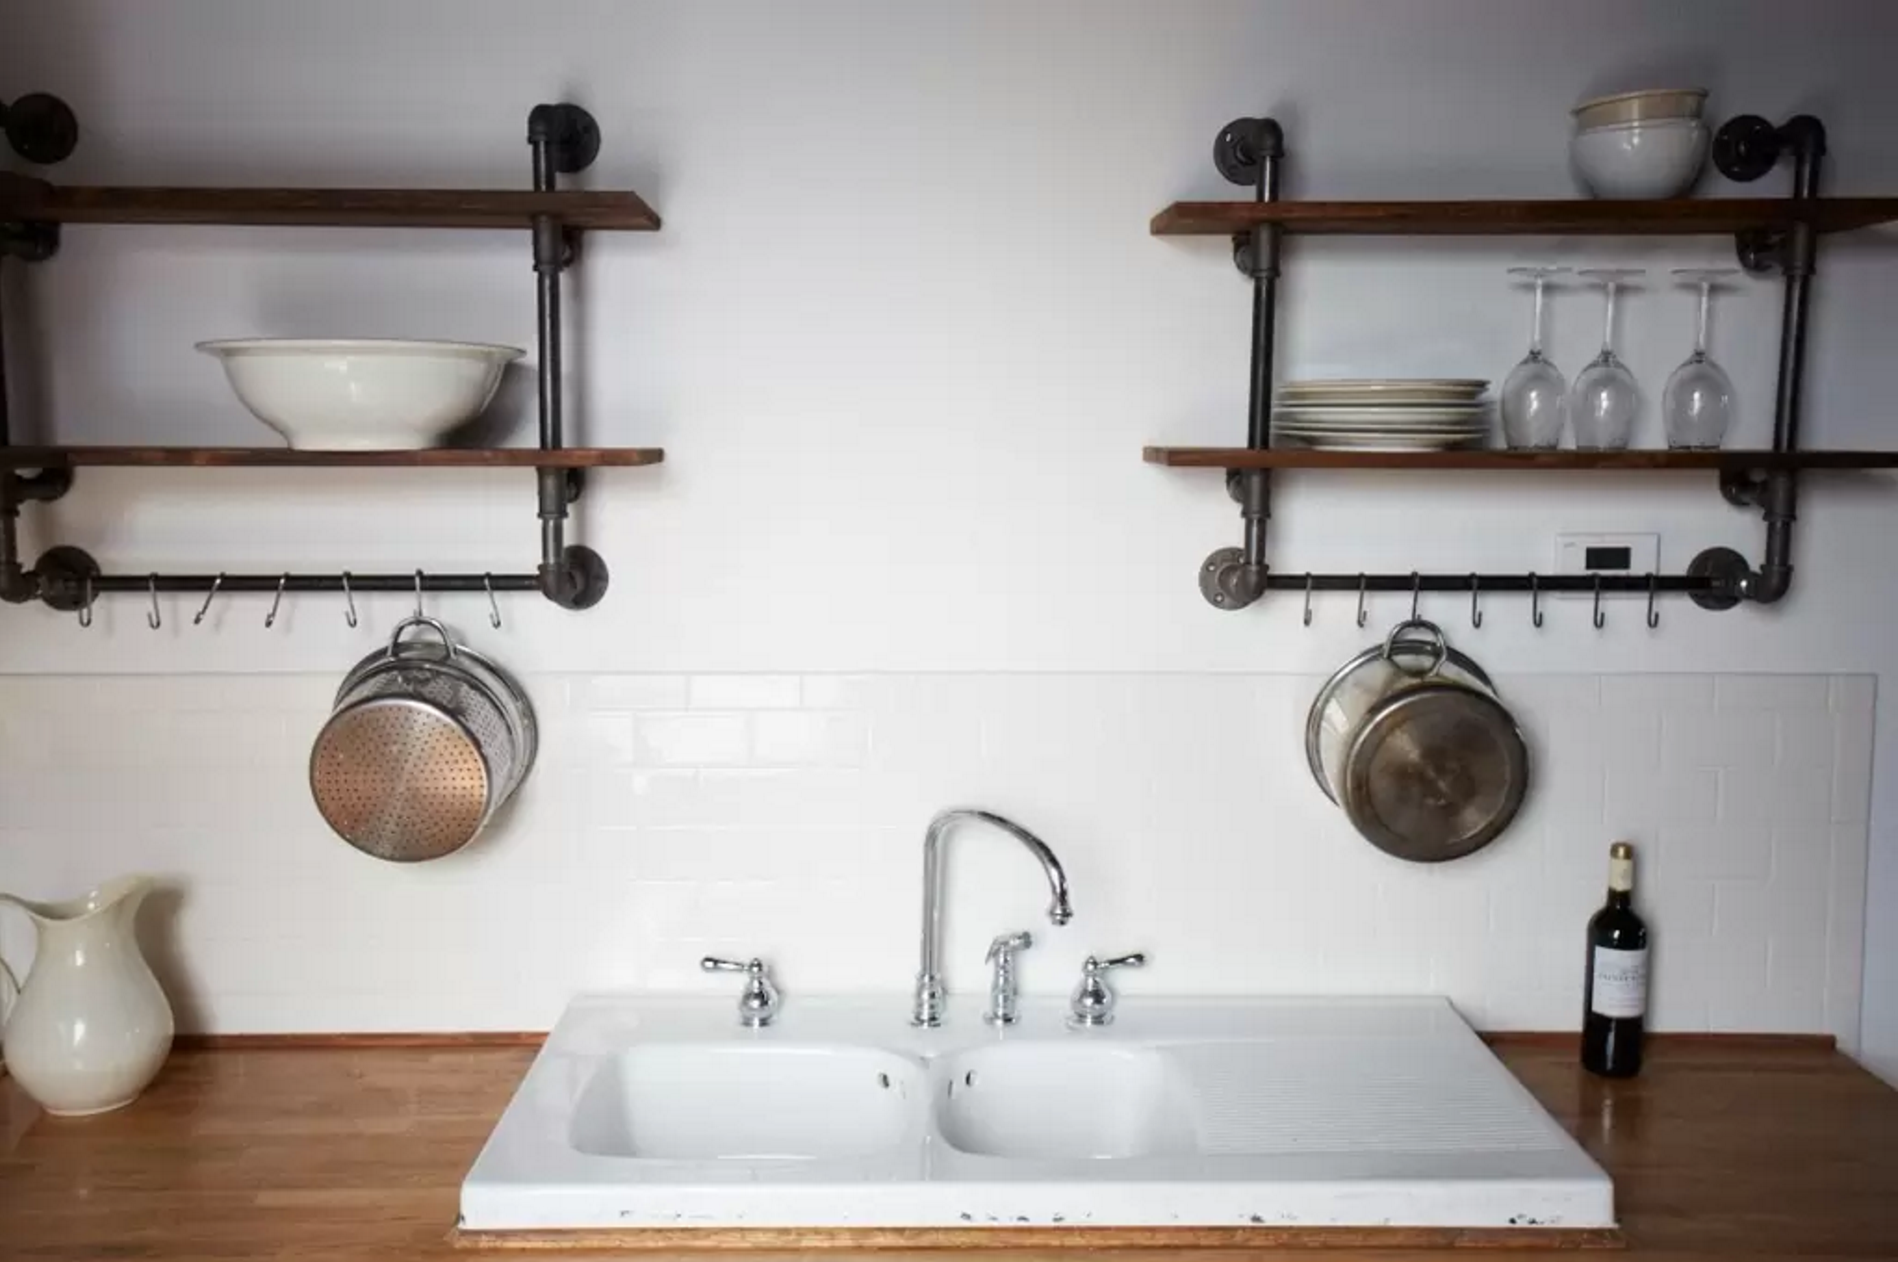 Steal This Look Hudson Milliner Kitchen in New York hudson milliner steal this look remodelista 2